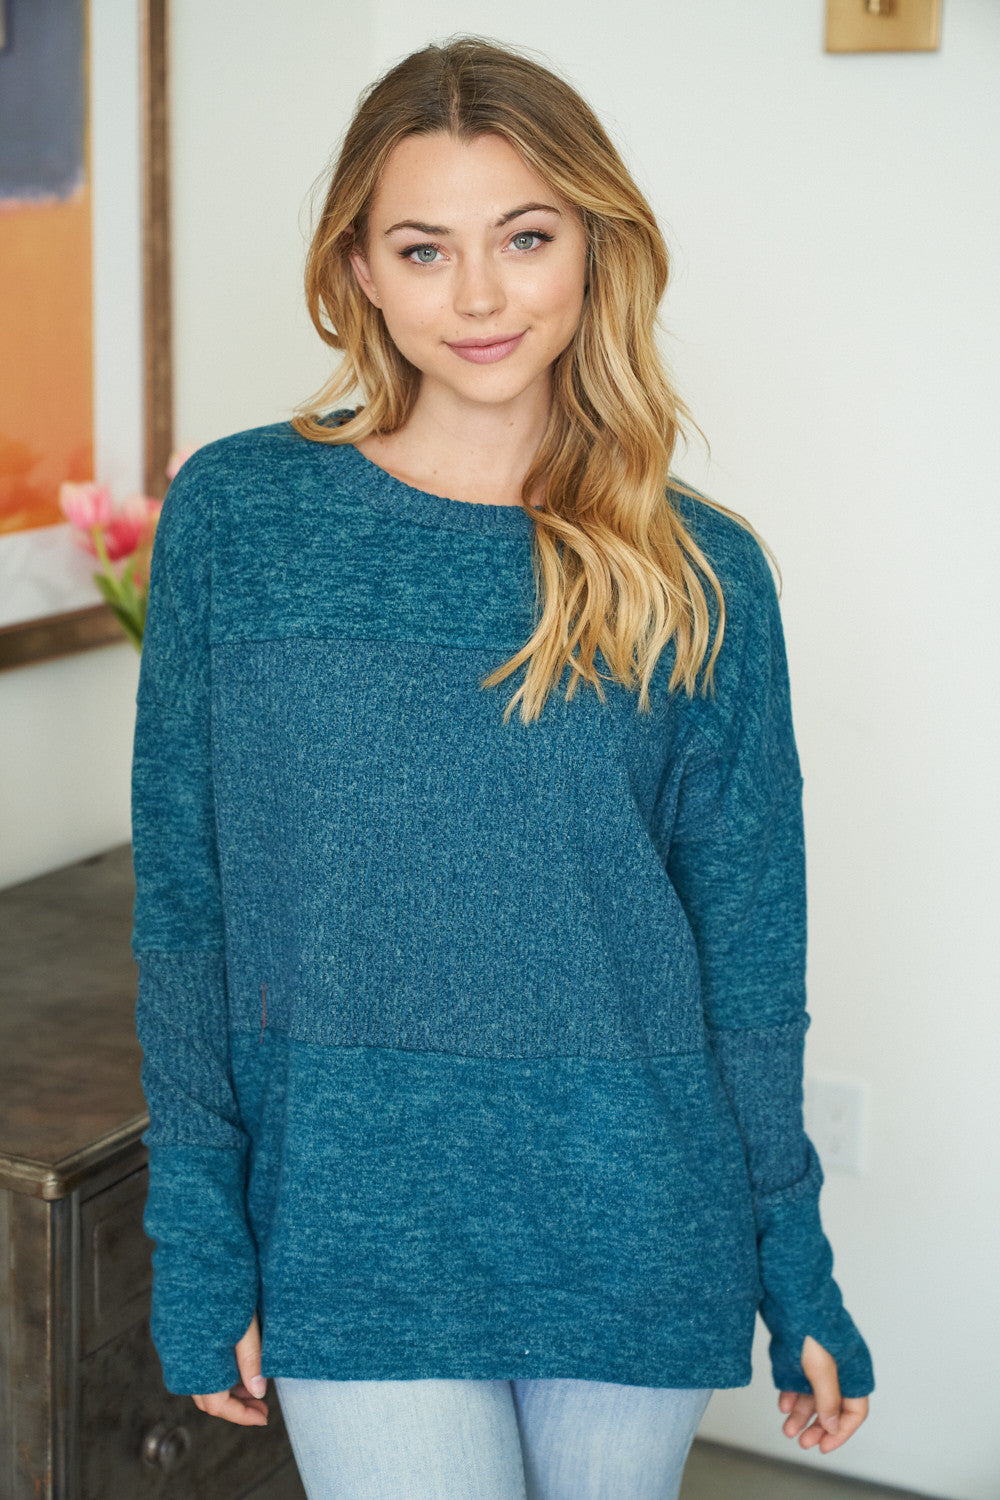 Long Sleeve Knit Top in Teal Green